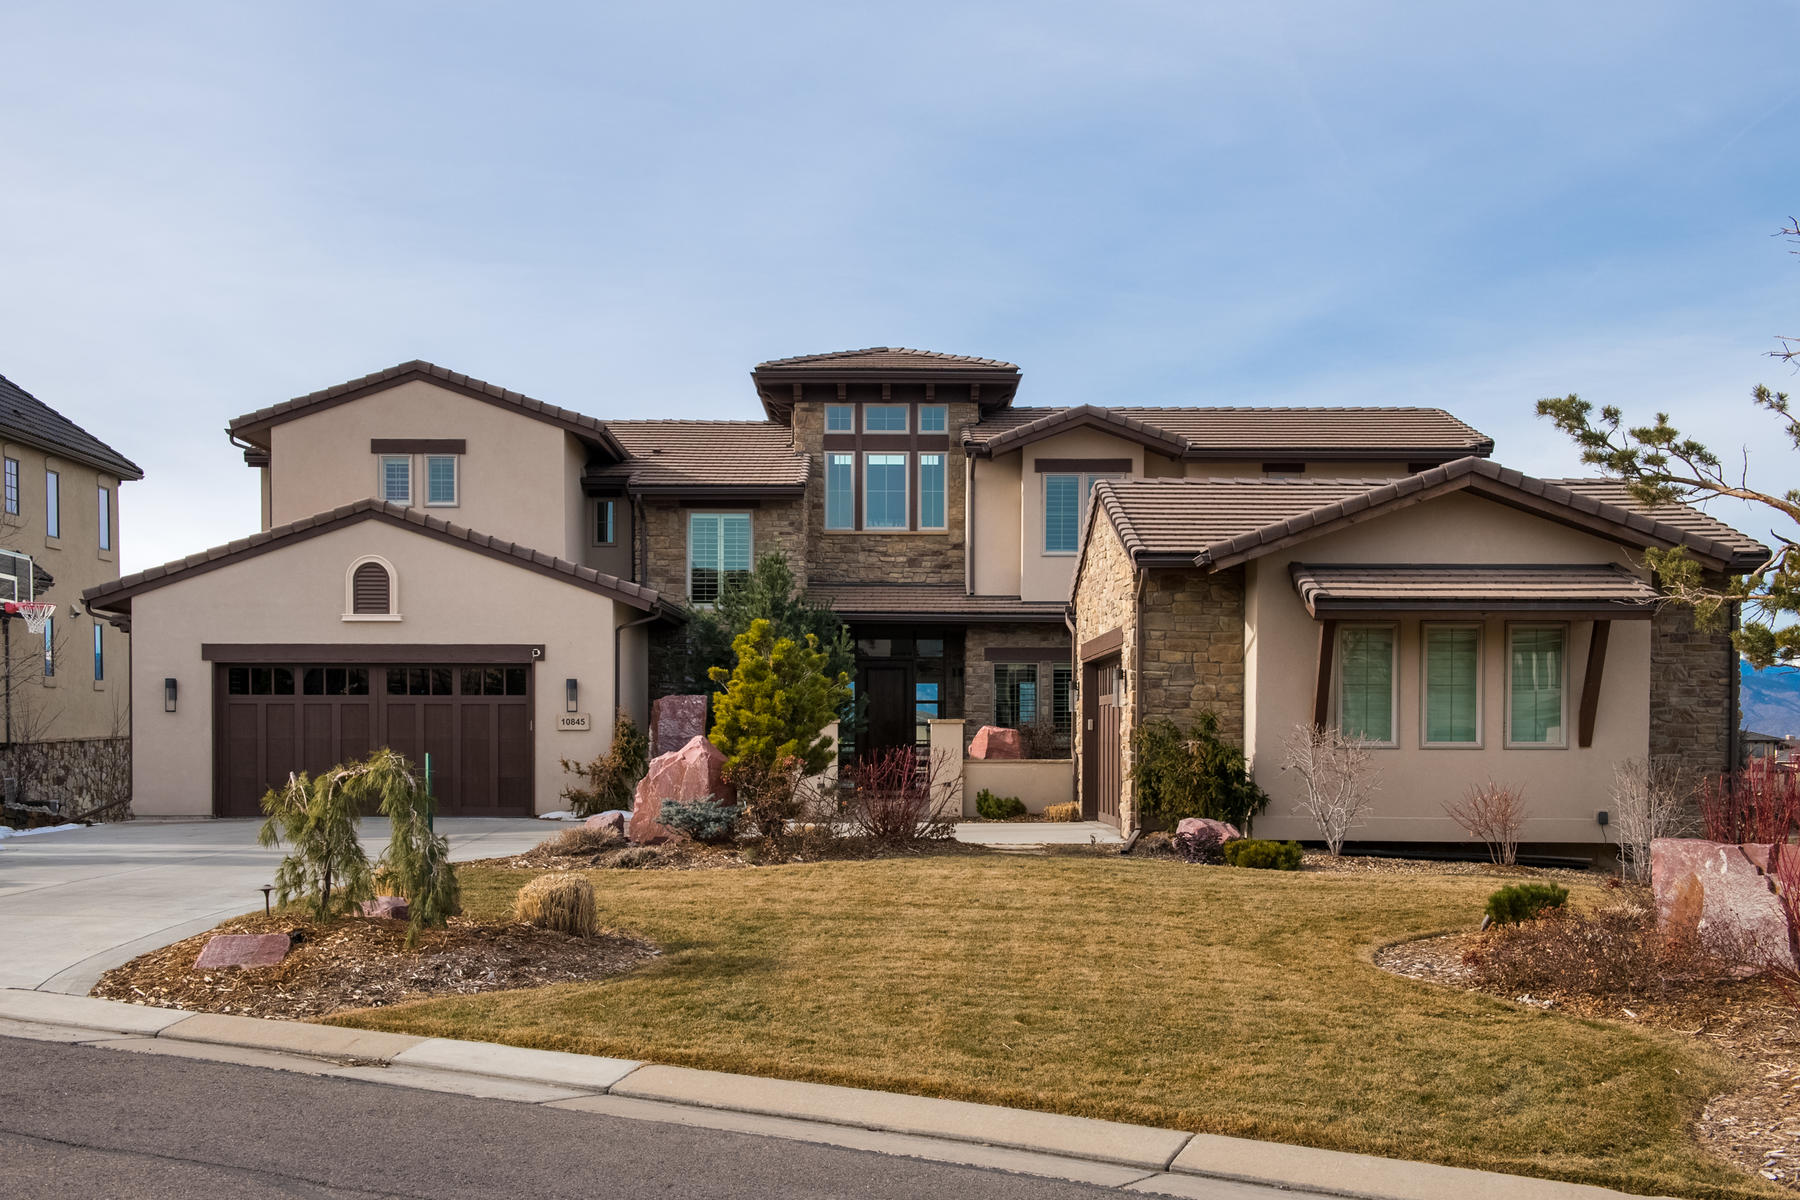 Single Family Home for Active at Backcounty 10845 Rainribbon Rd Highlands Ranch, Colorado 80126 United States